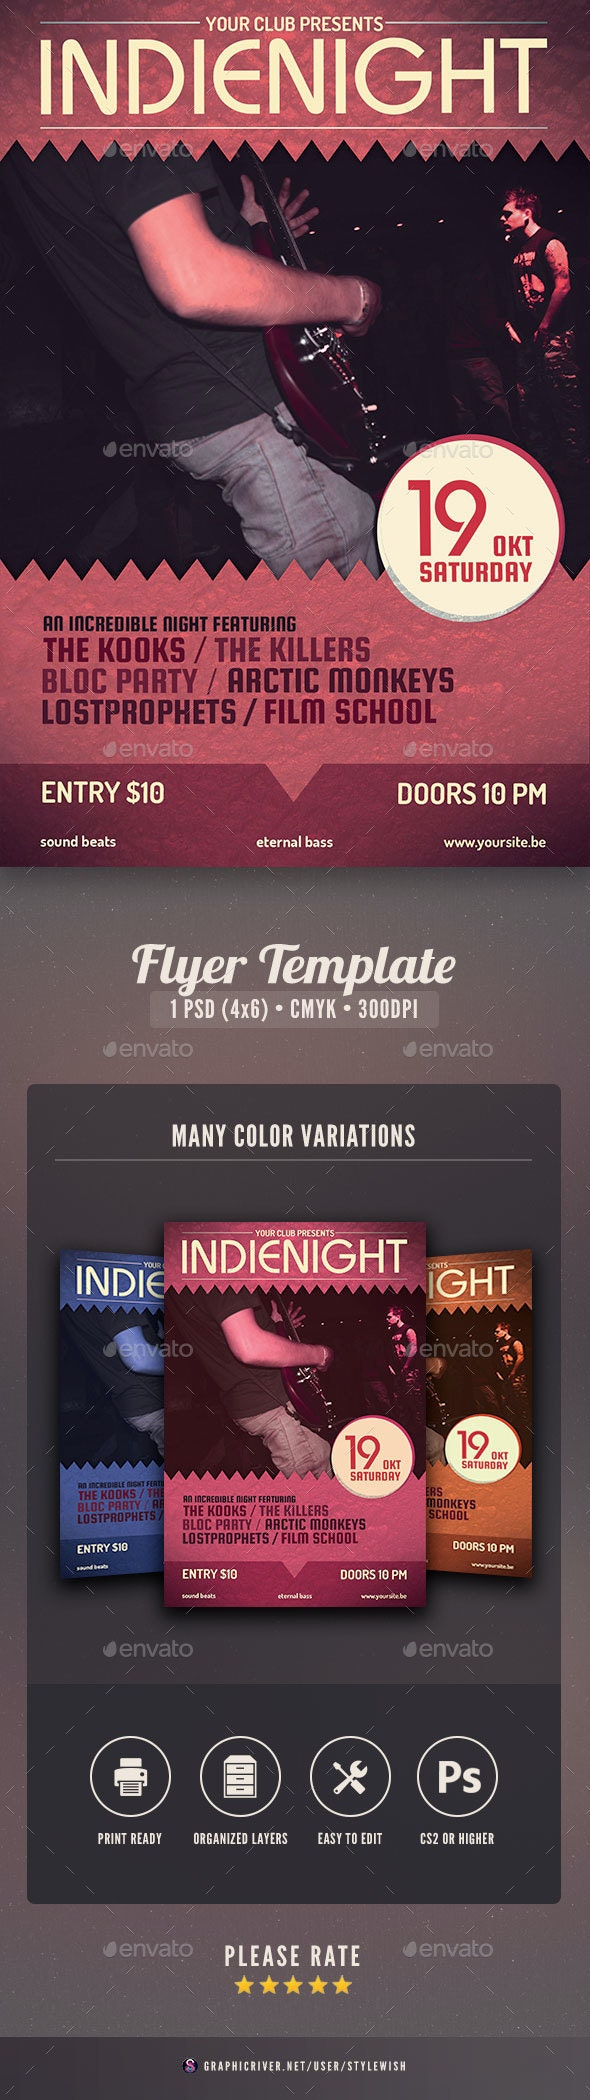 Indienight Flyer - Concerts Events